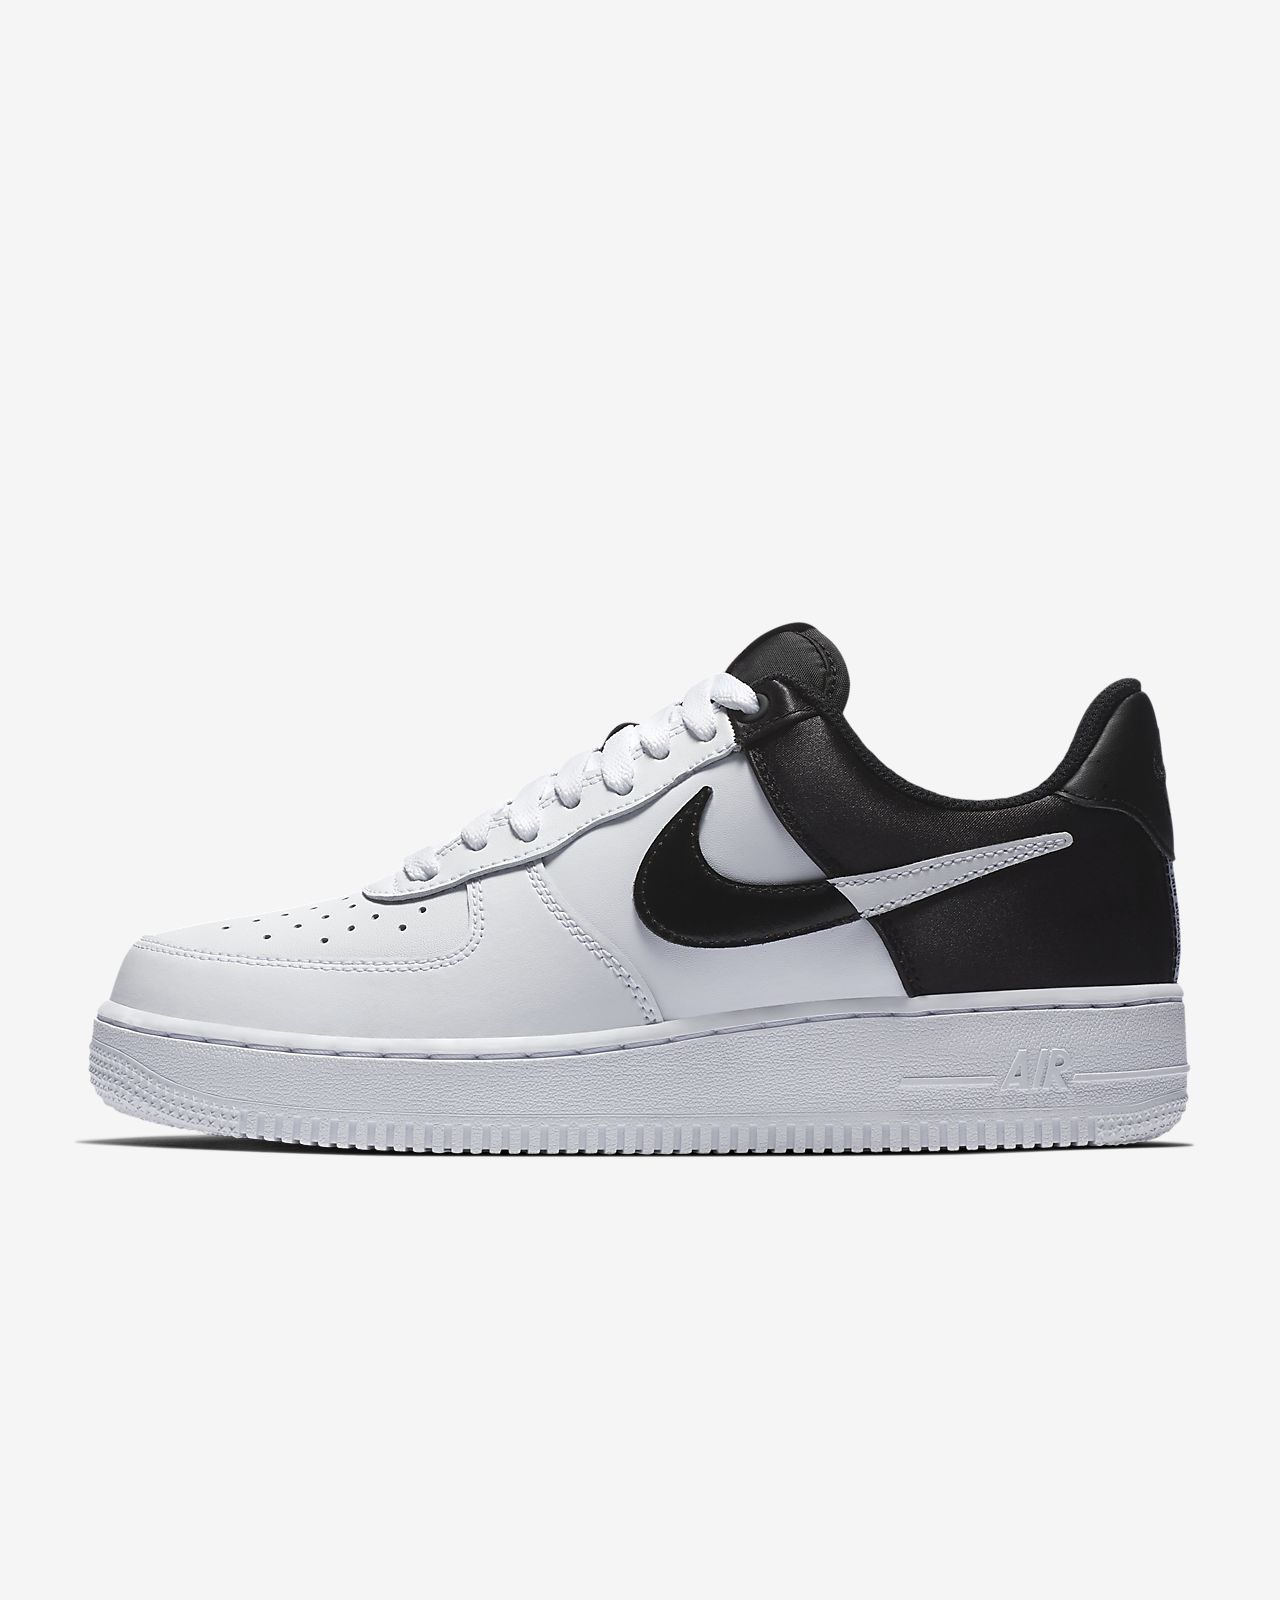 Air Force 1 Low NBA Black White